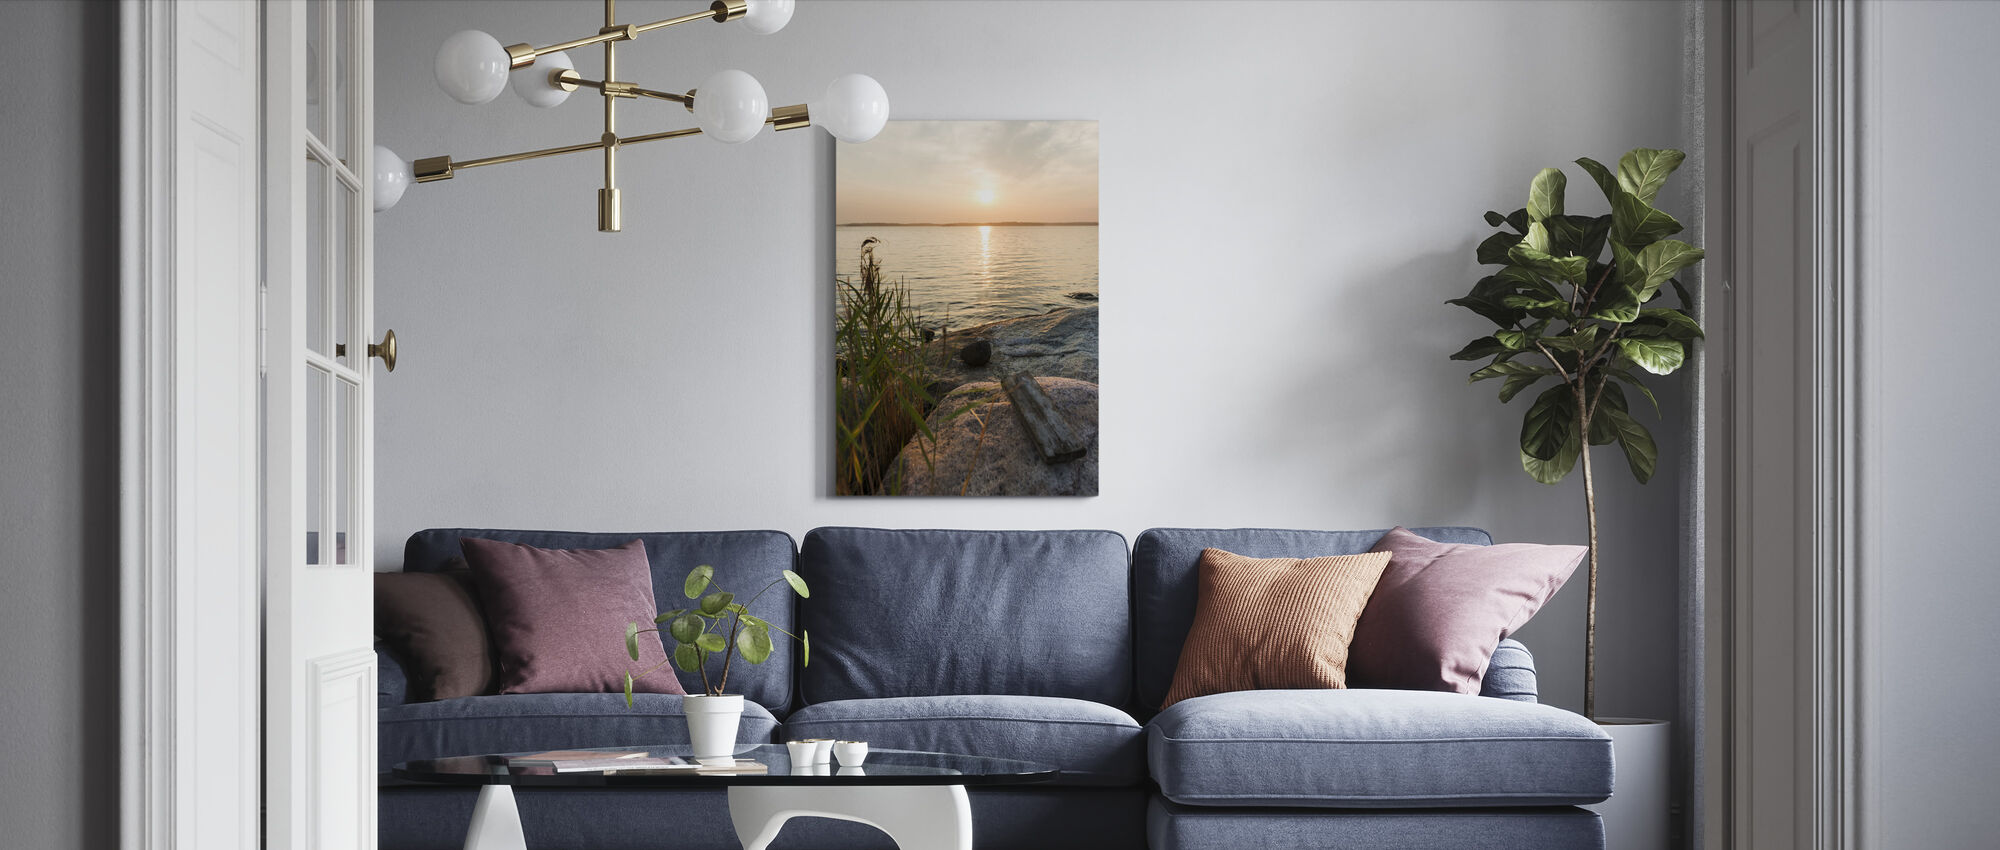 Sunset over Nässlingen, Sweden - Canvas print - Living Room